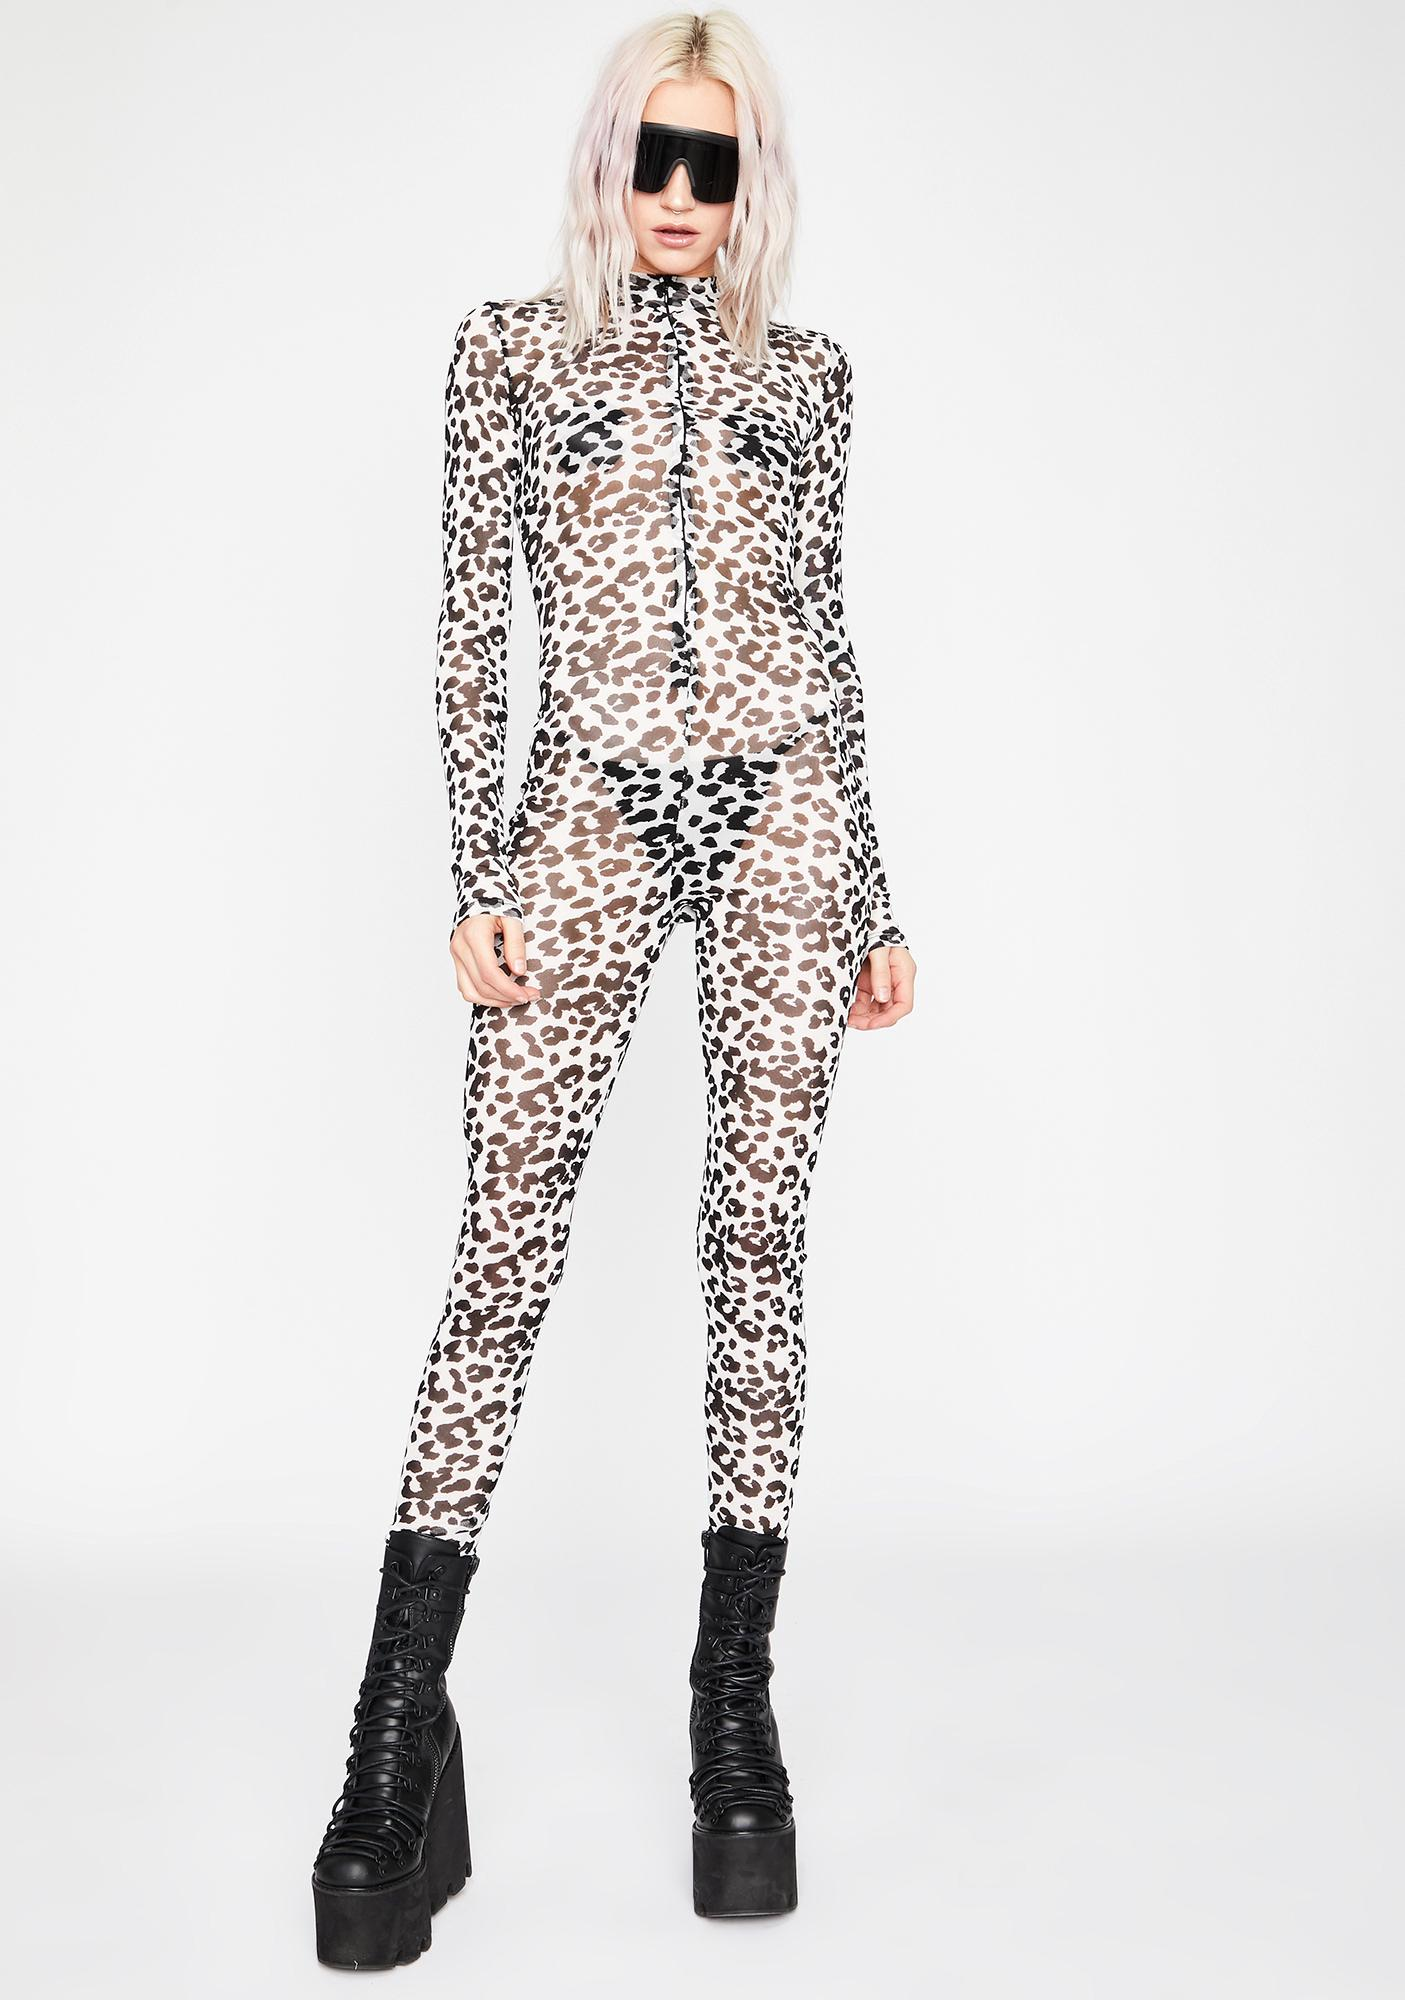 Bad Kitty Business Mesh Catsuit